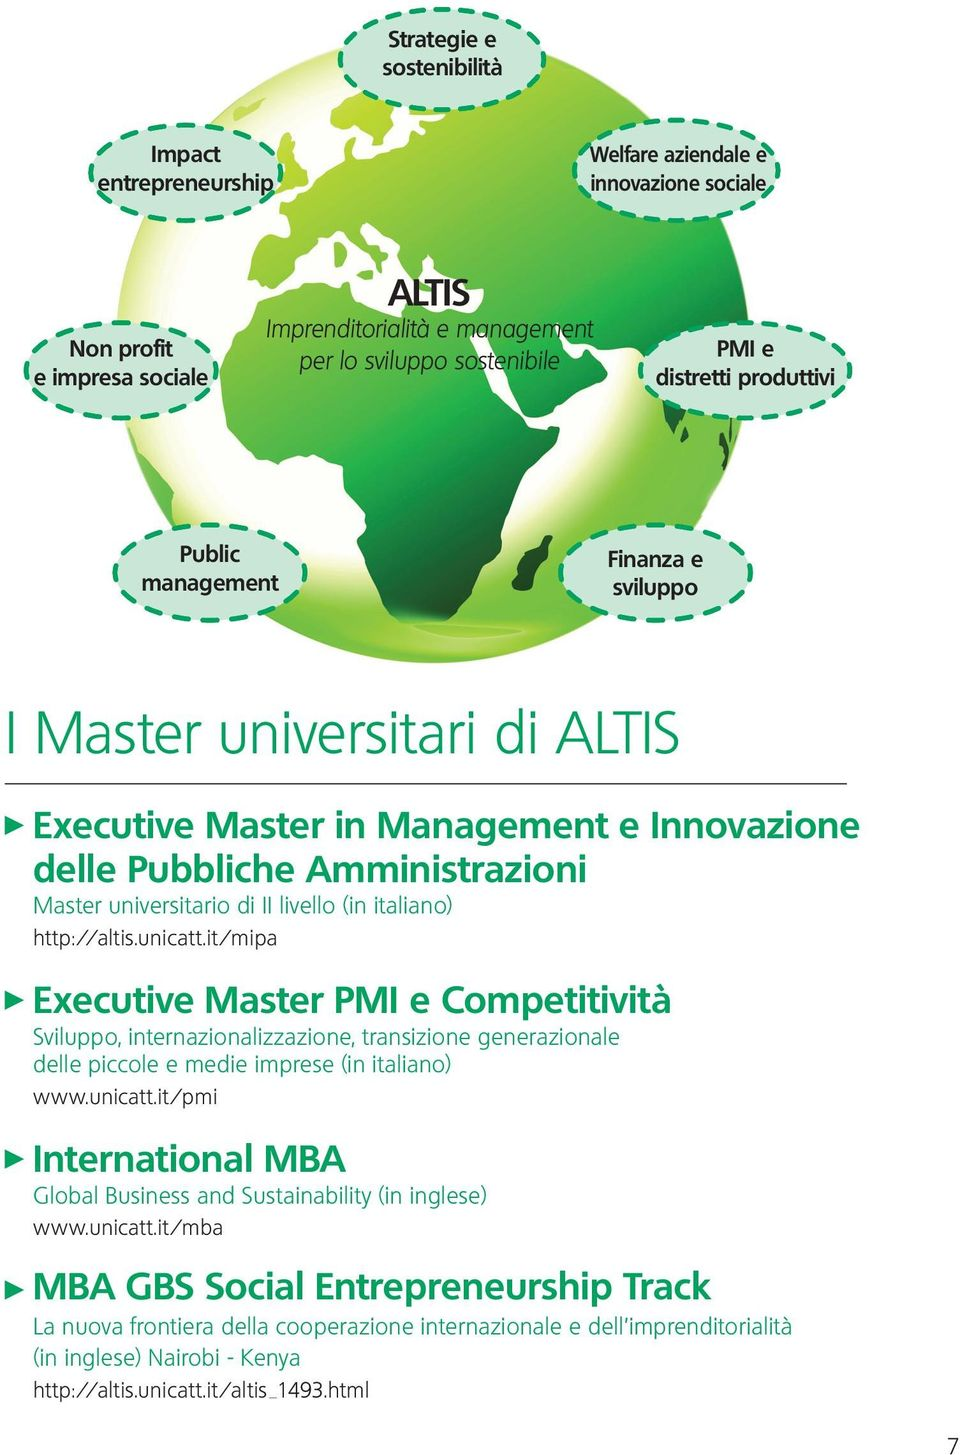 italiano) http://altis.unicatt.it/mipa Executive Master PMI e Competitività Sviluppo, internazionalizzazione, transizione generazionale delle piccole e medie imprese (in italiano) www.unicatt.it/pmi International MBA Global Business and Sustainability (in inglese) www.